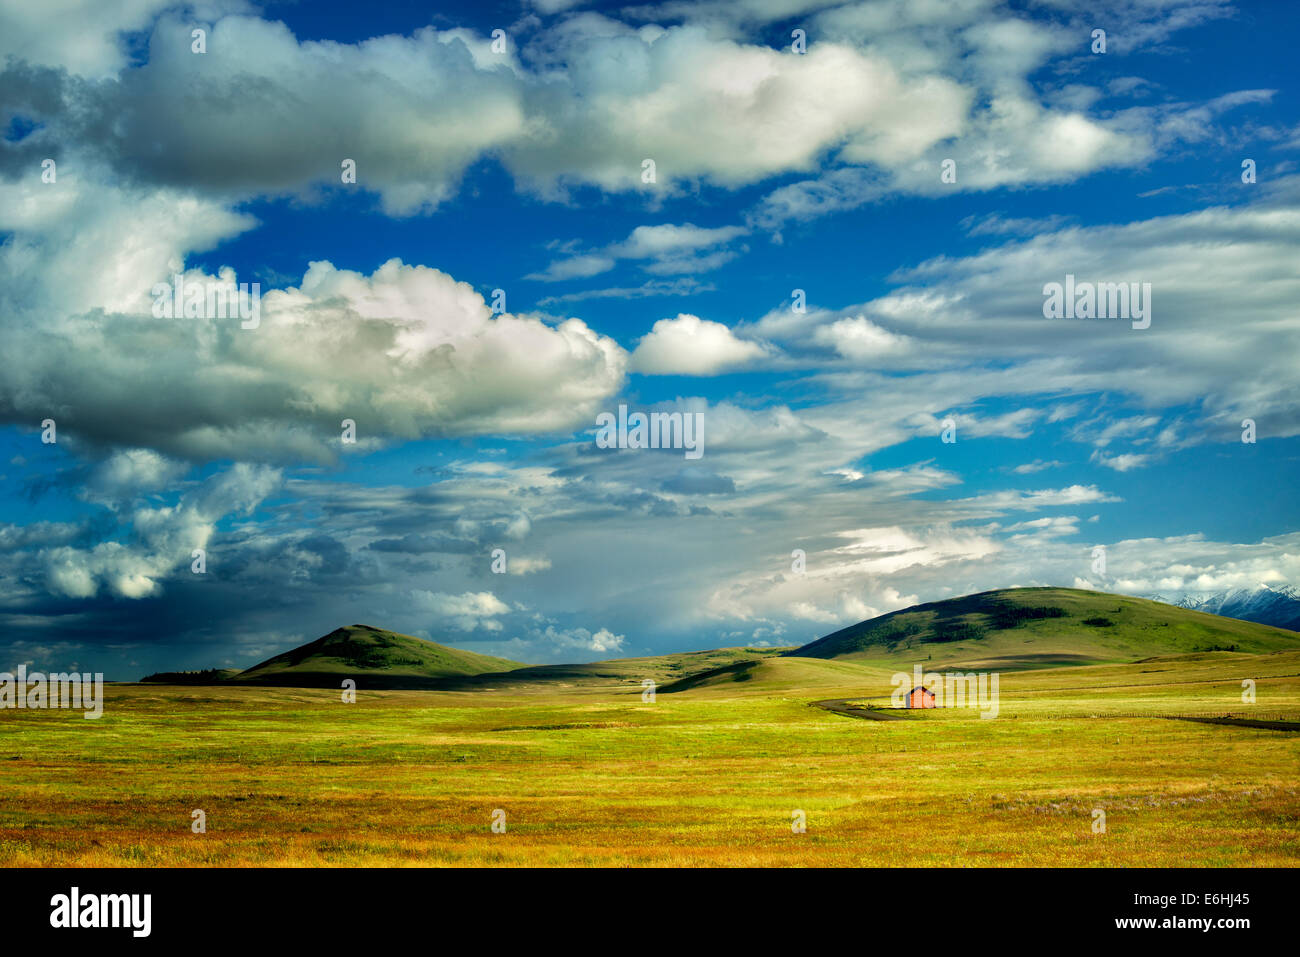 Wildflowers in pasture with barn. Zumwalt Prairie Preserve, Oregon - Stock Image